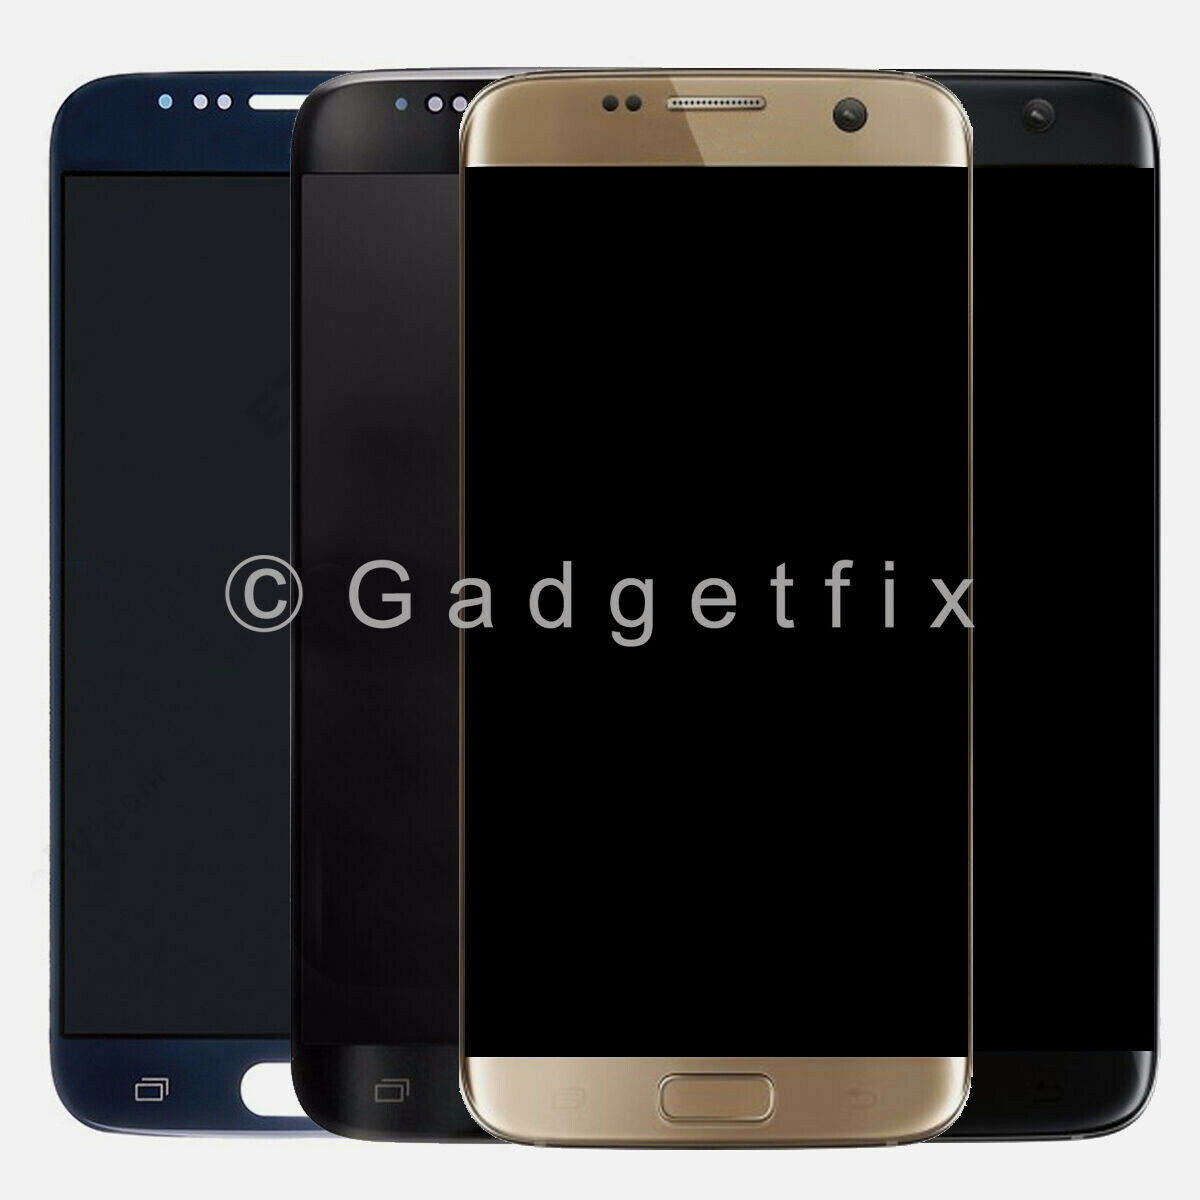 samsung galaxy s6 s7 edge s8 s9 plus lcd display touch screen digitizer assembly. Black Bedroom Furniture Sets. Home Design Ideas